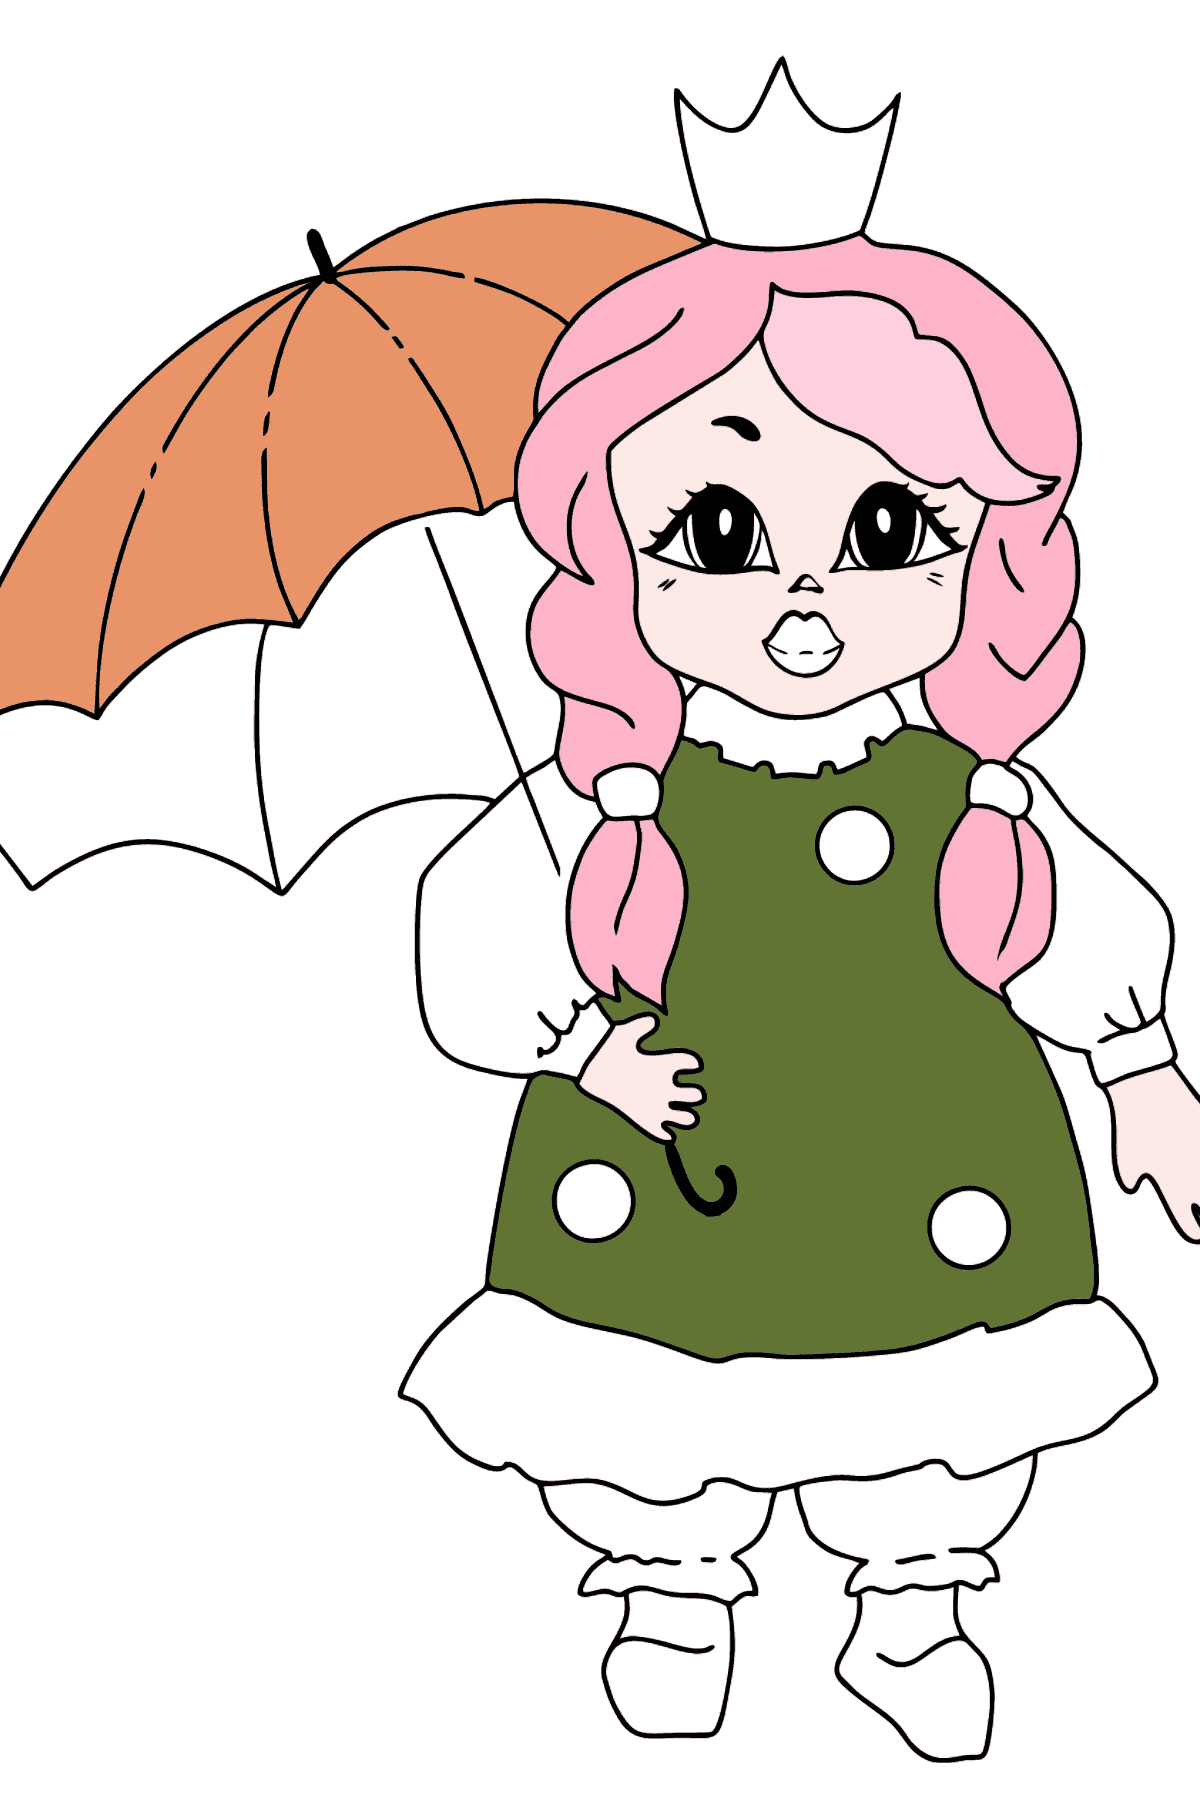 Coloring Page - A Princess with an Umbrella - Coloring Pages for Kids